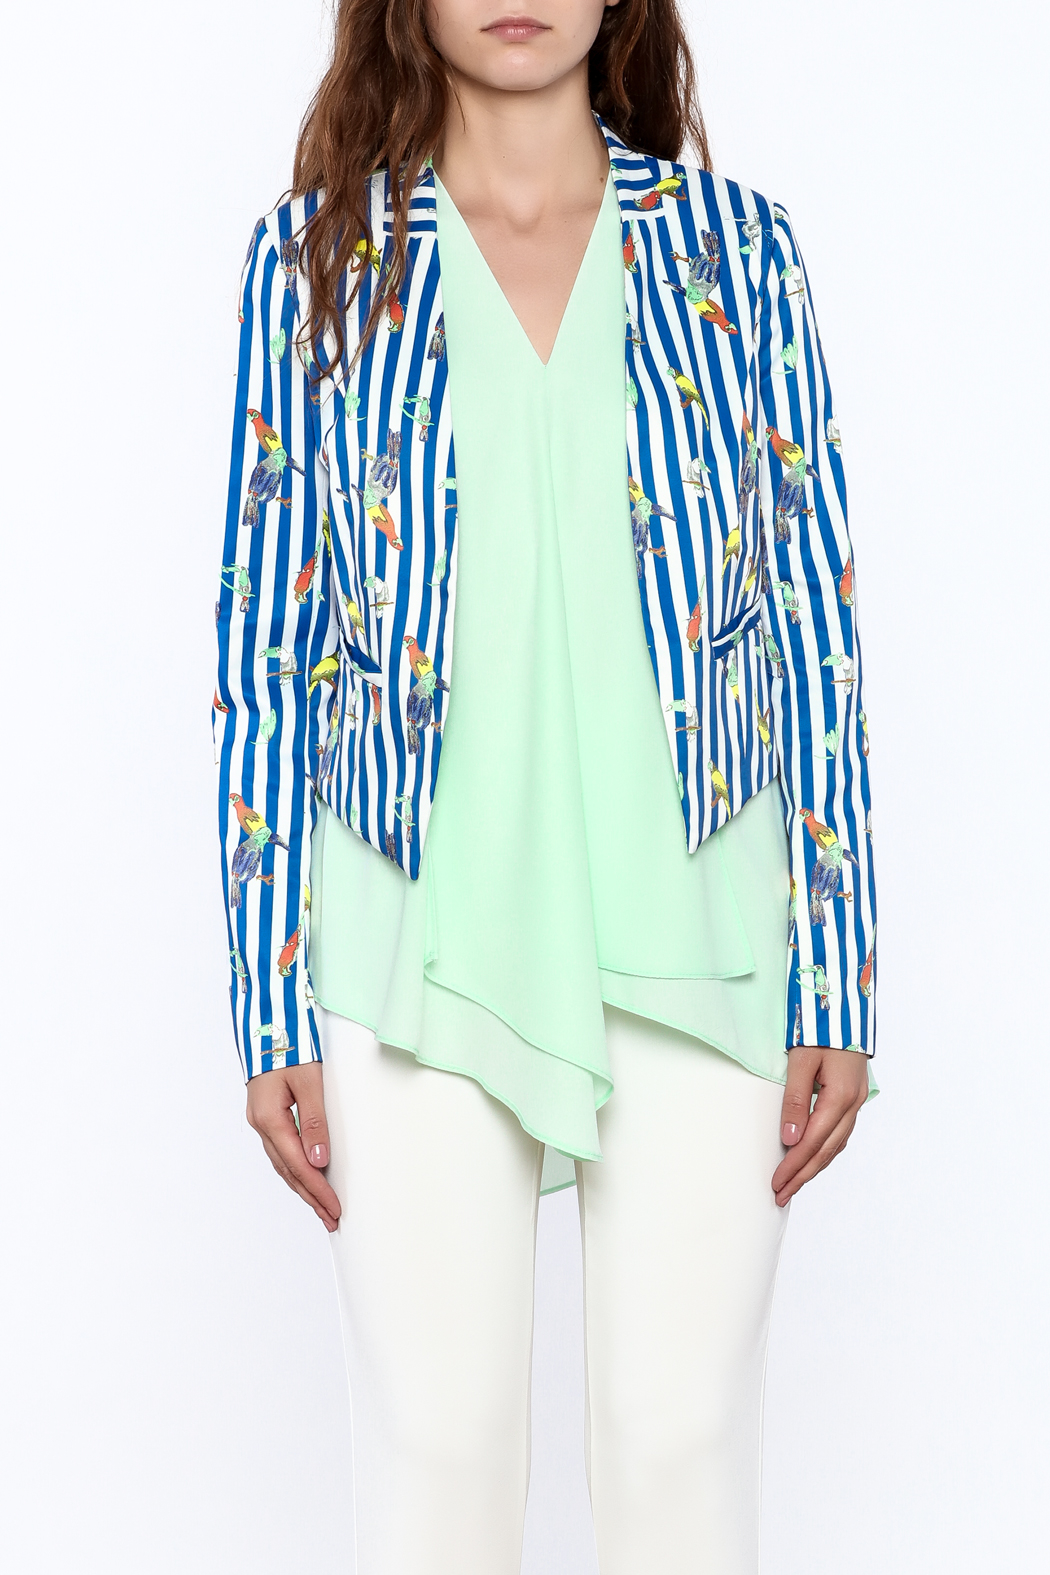 OVI Blue Stripe Print Blazer - Side Cropped Image